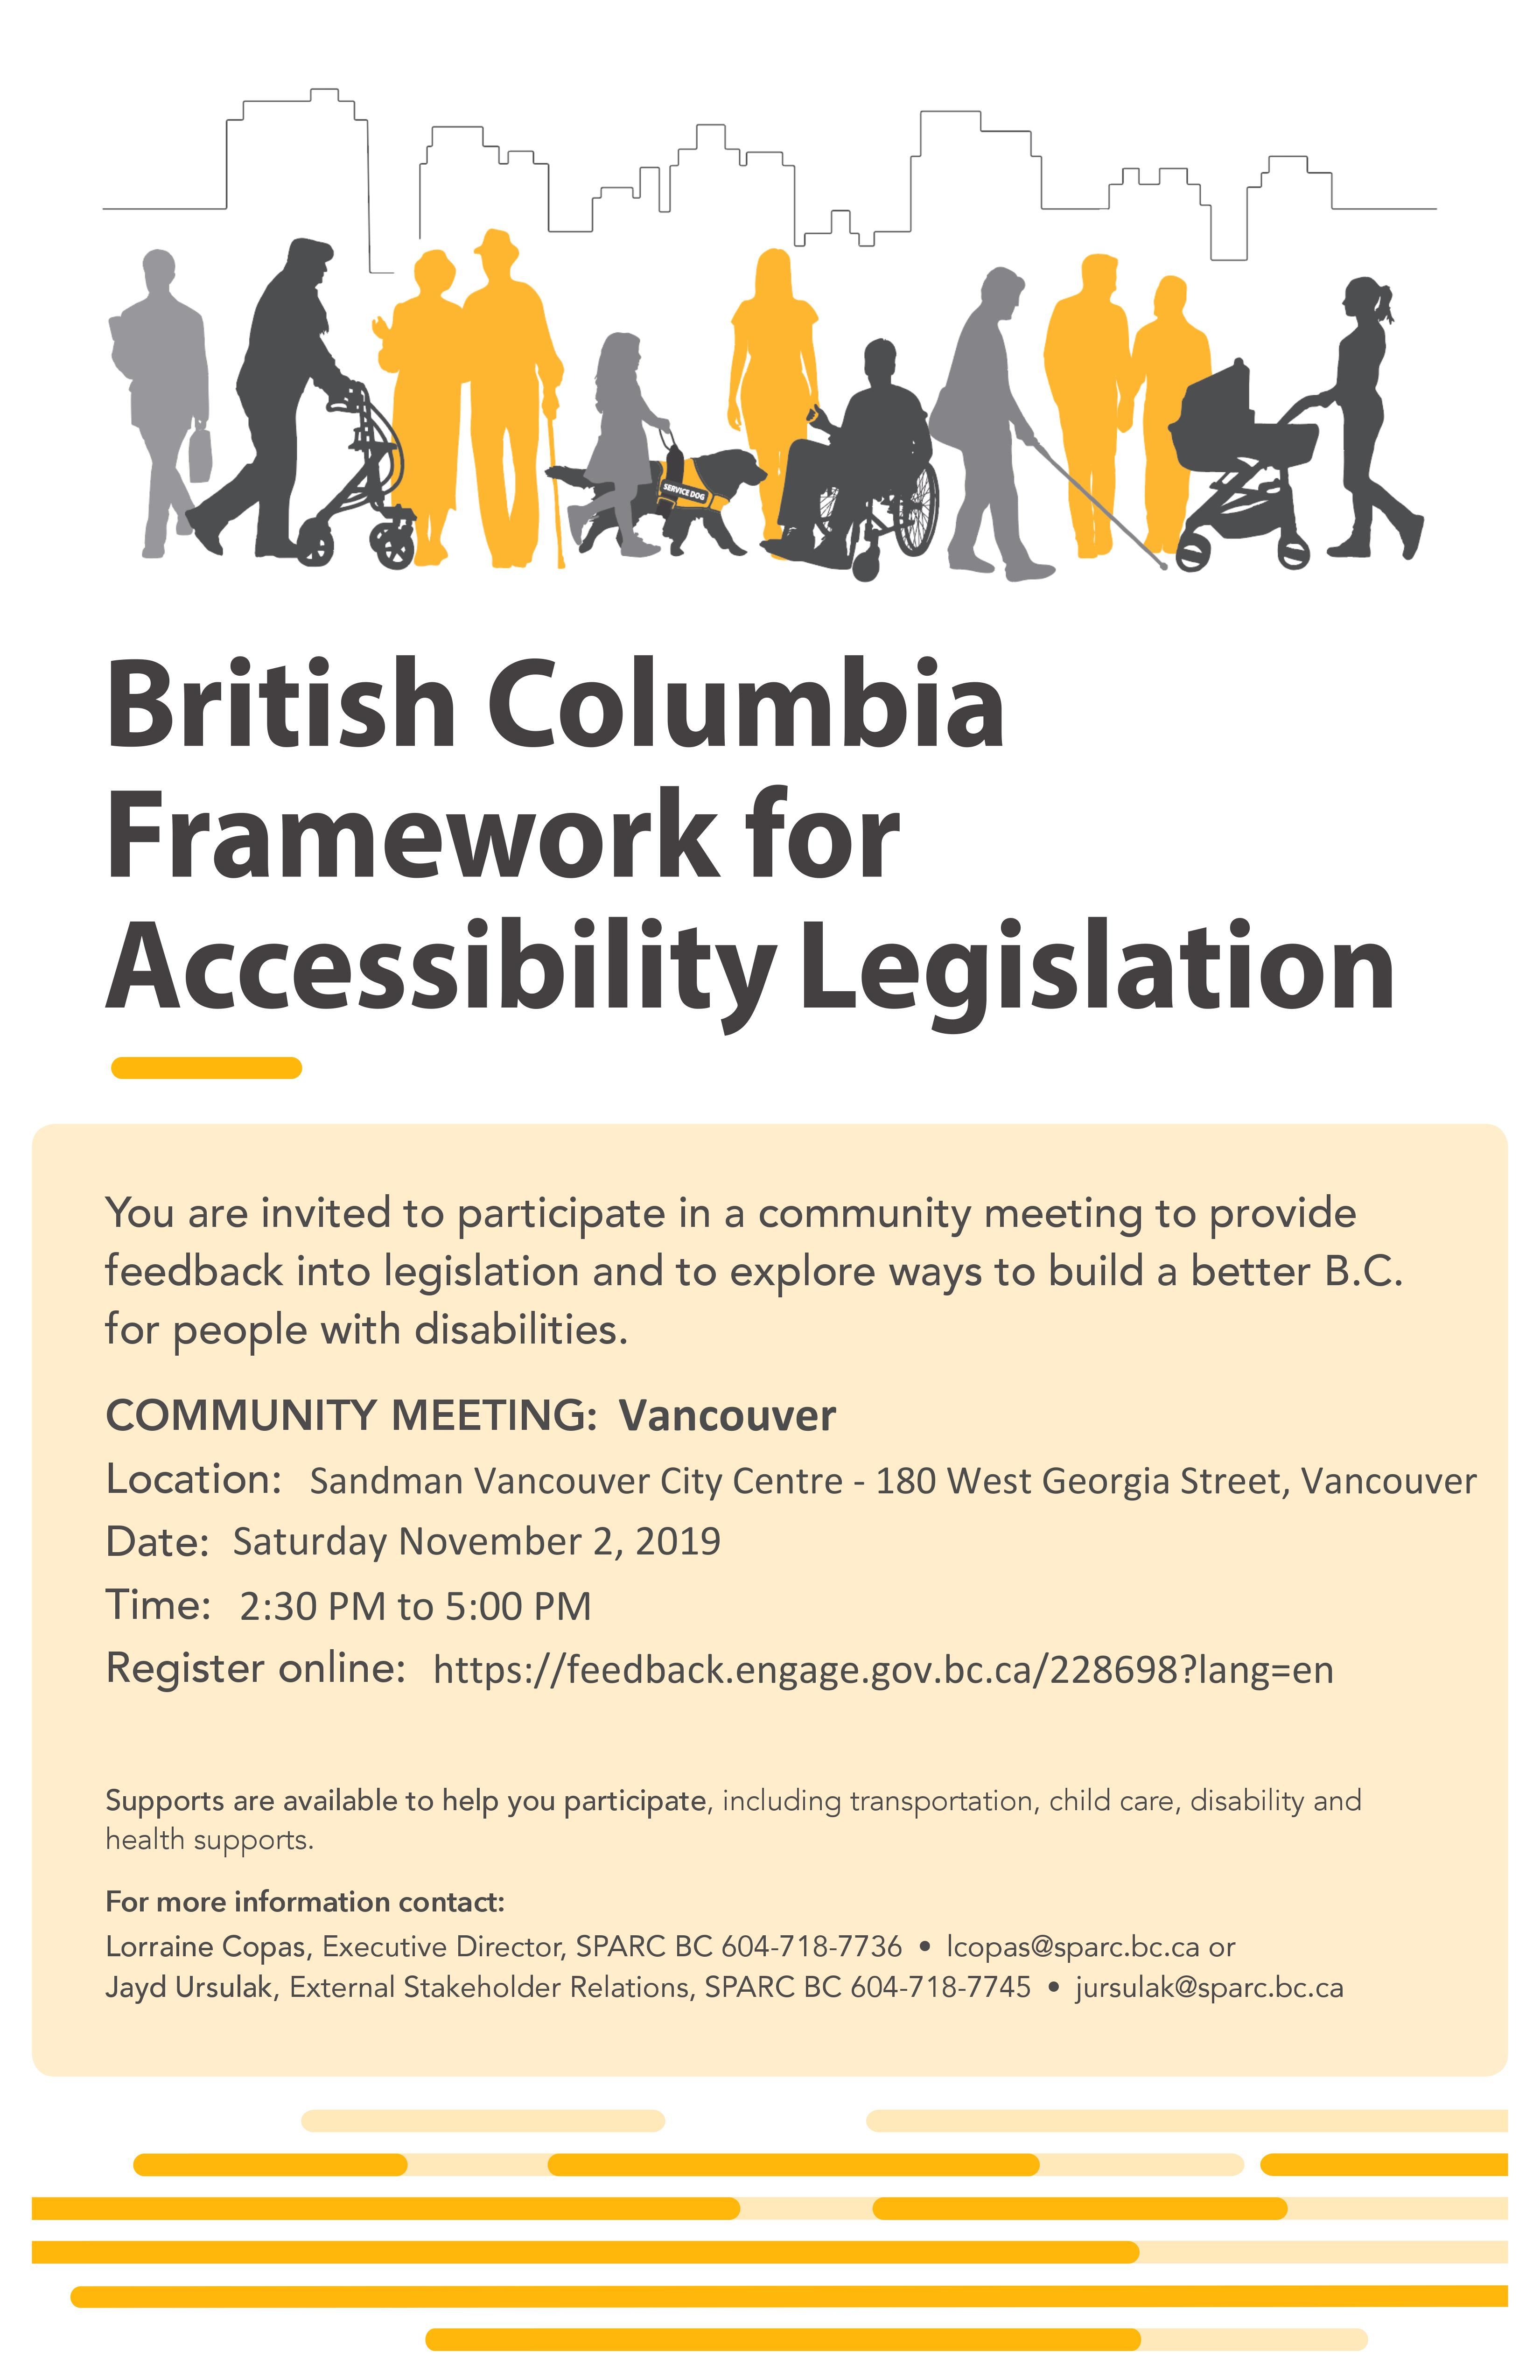 Vancouver Community meeting poster